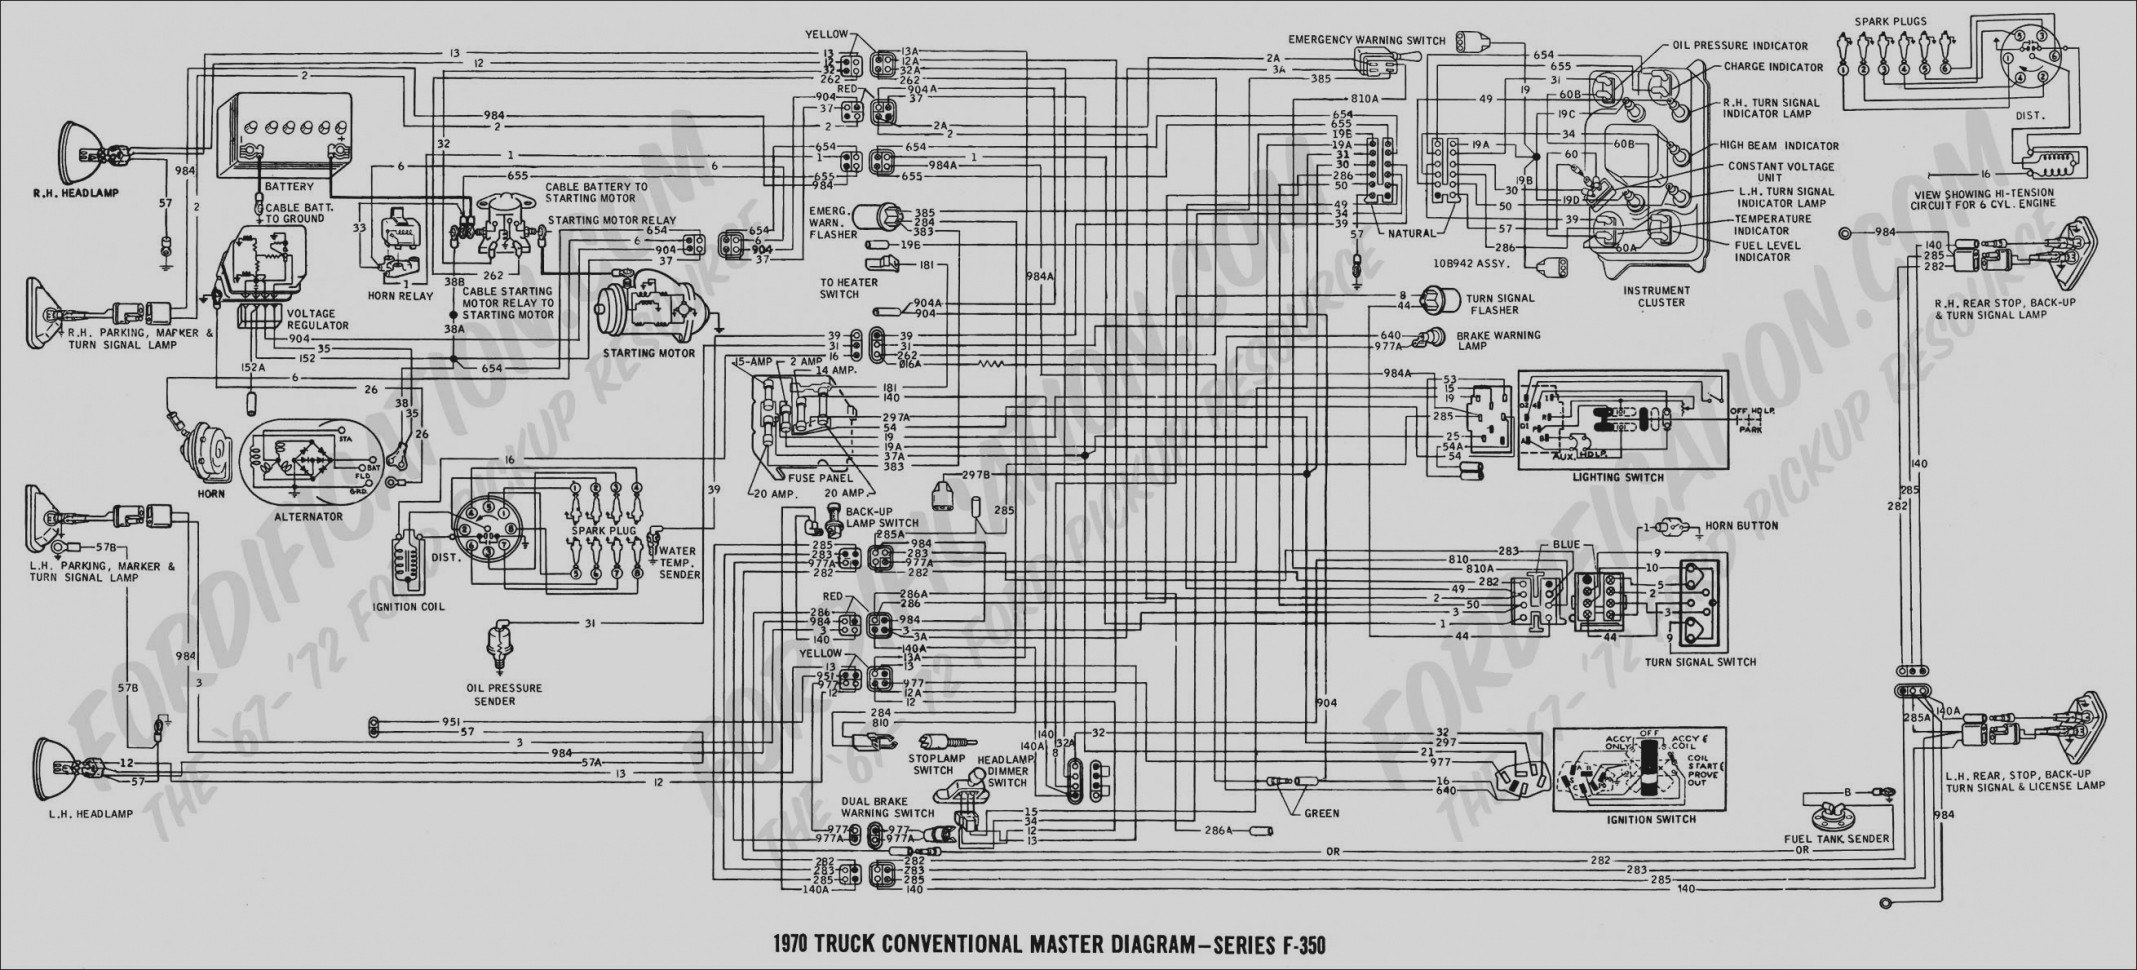 1999 ford Mustang Engine Diagram Collection 1972 ford Mustang Wiring  Diagram Engine Diagrams Of 1999 ford